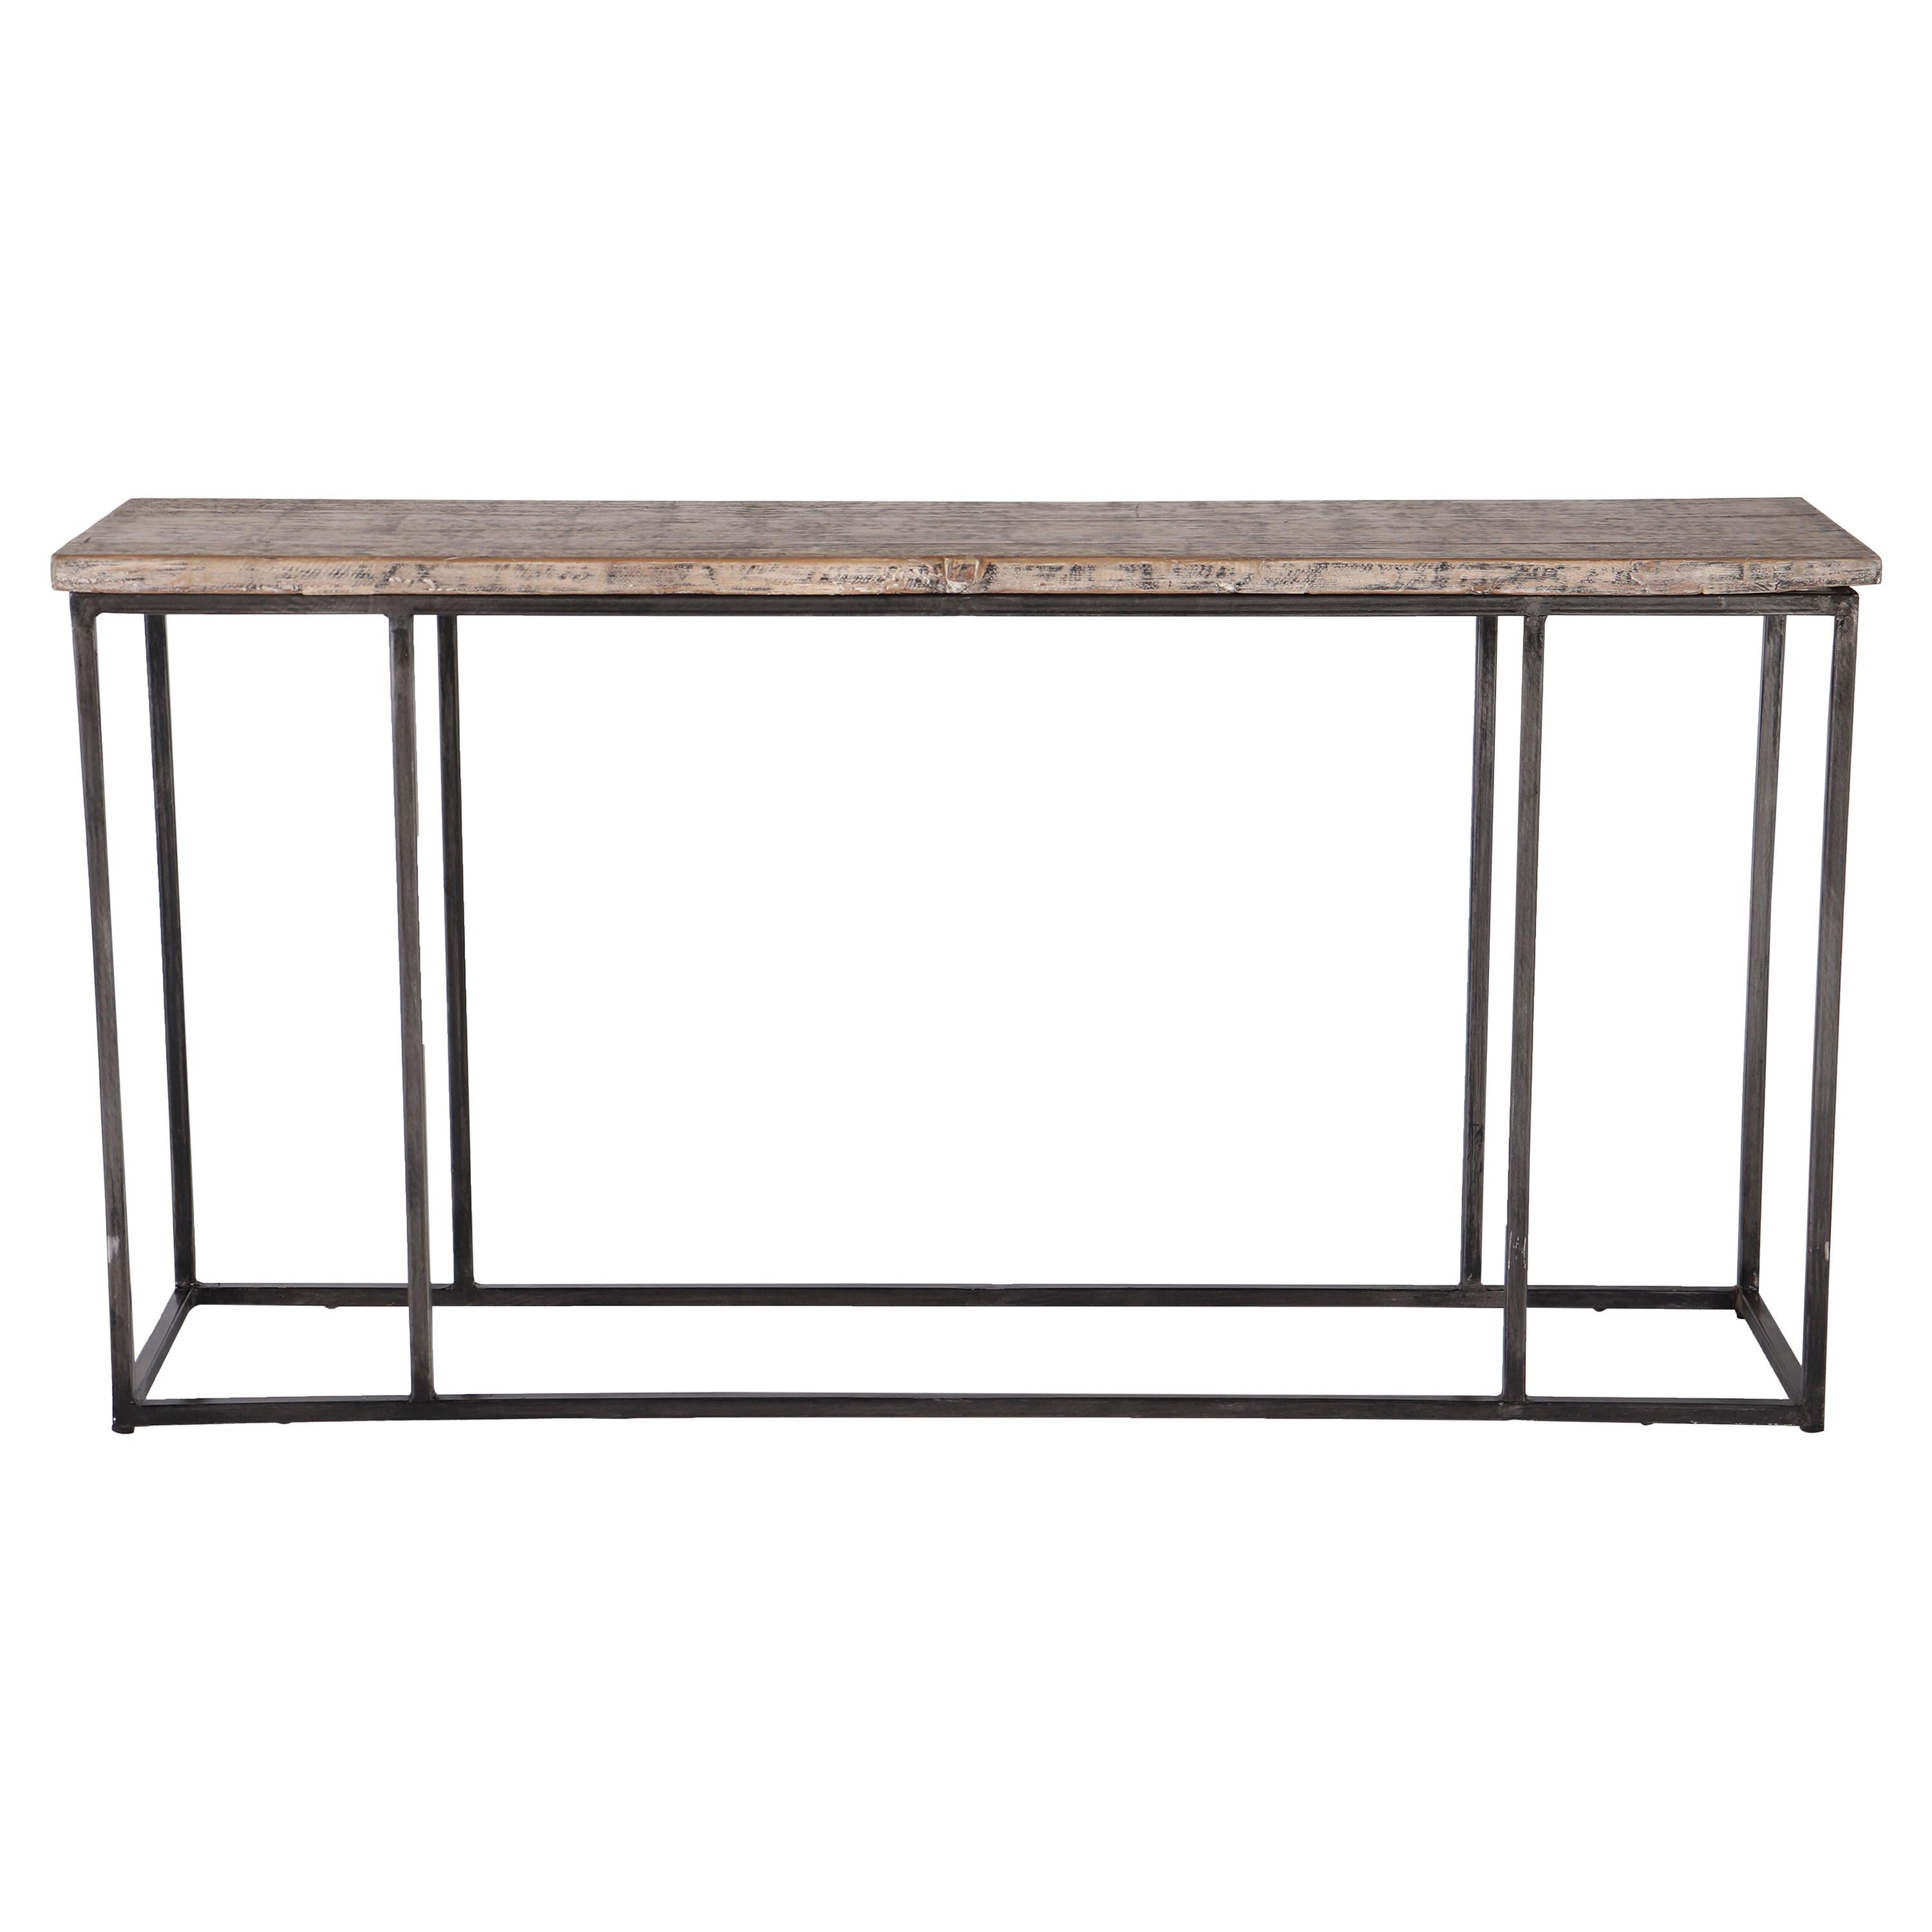 Console Table Crafted from Repurposed Ash, Patined Steel Base